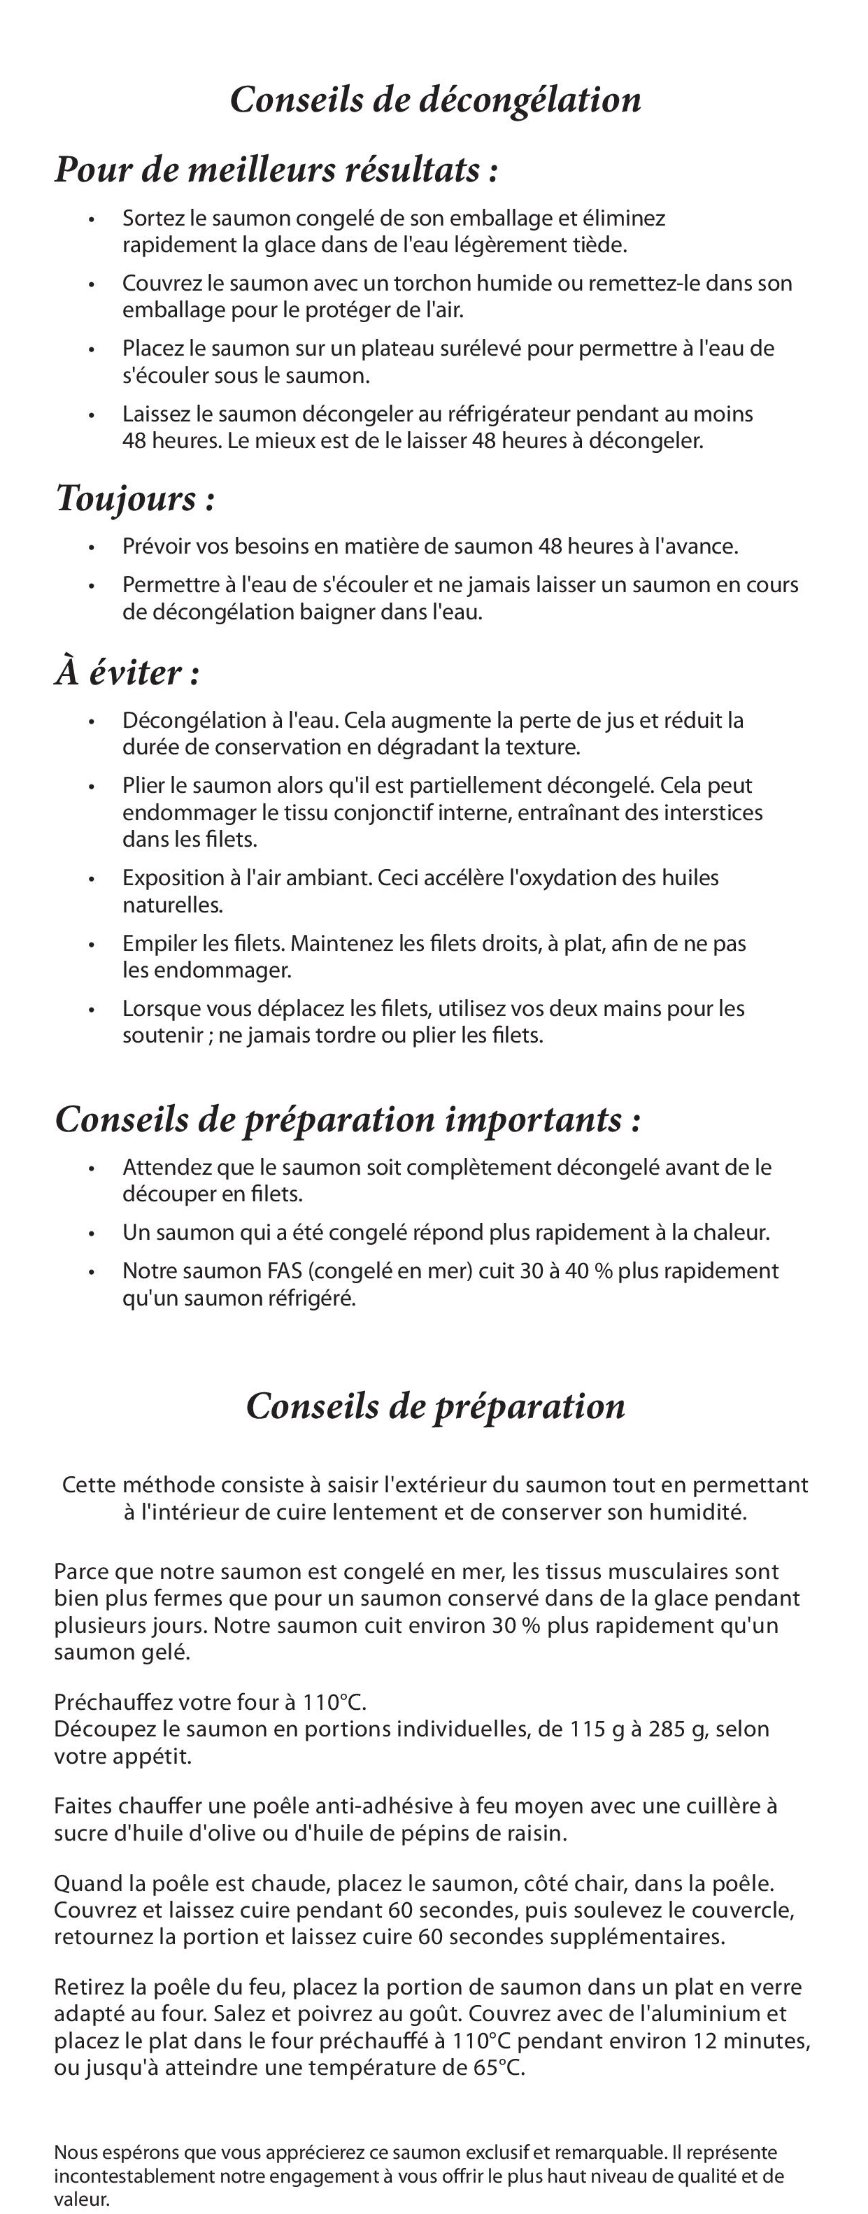 French brochure instructions